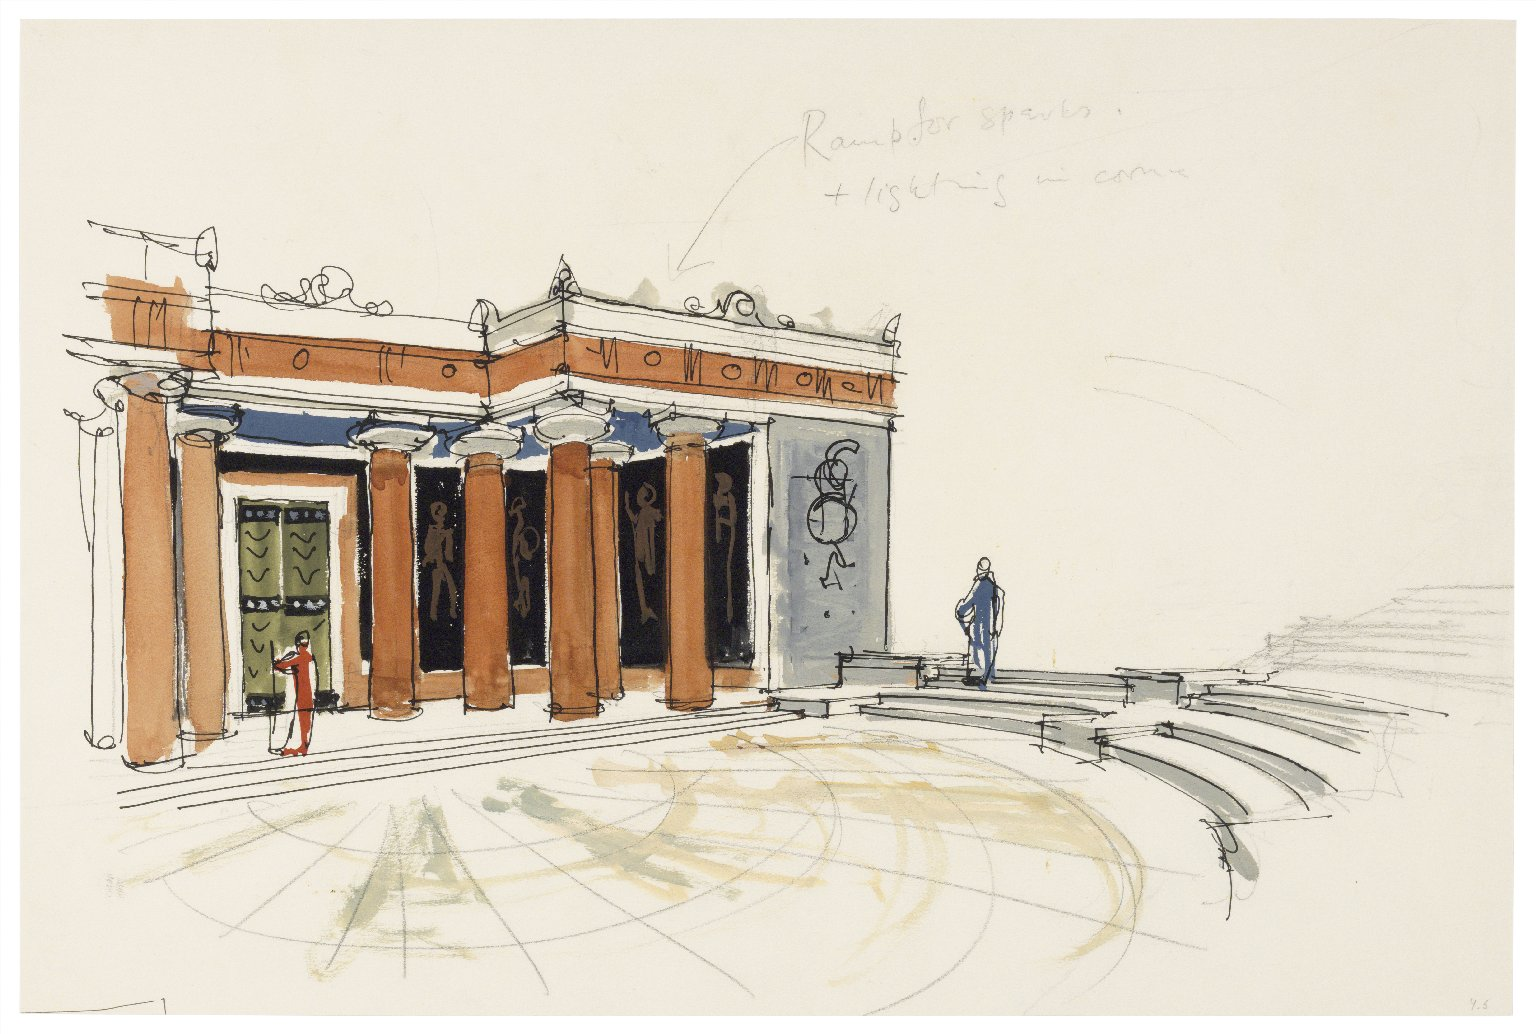 Oedipus Rex, sketch for proposed setting as Greek theater